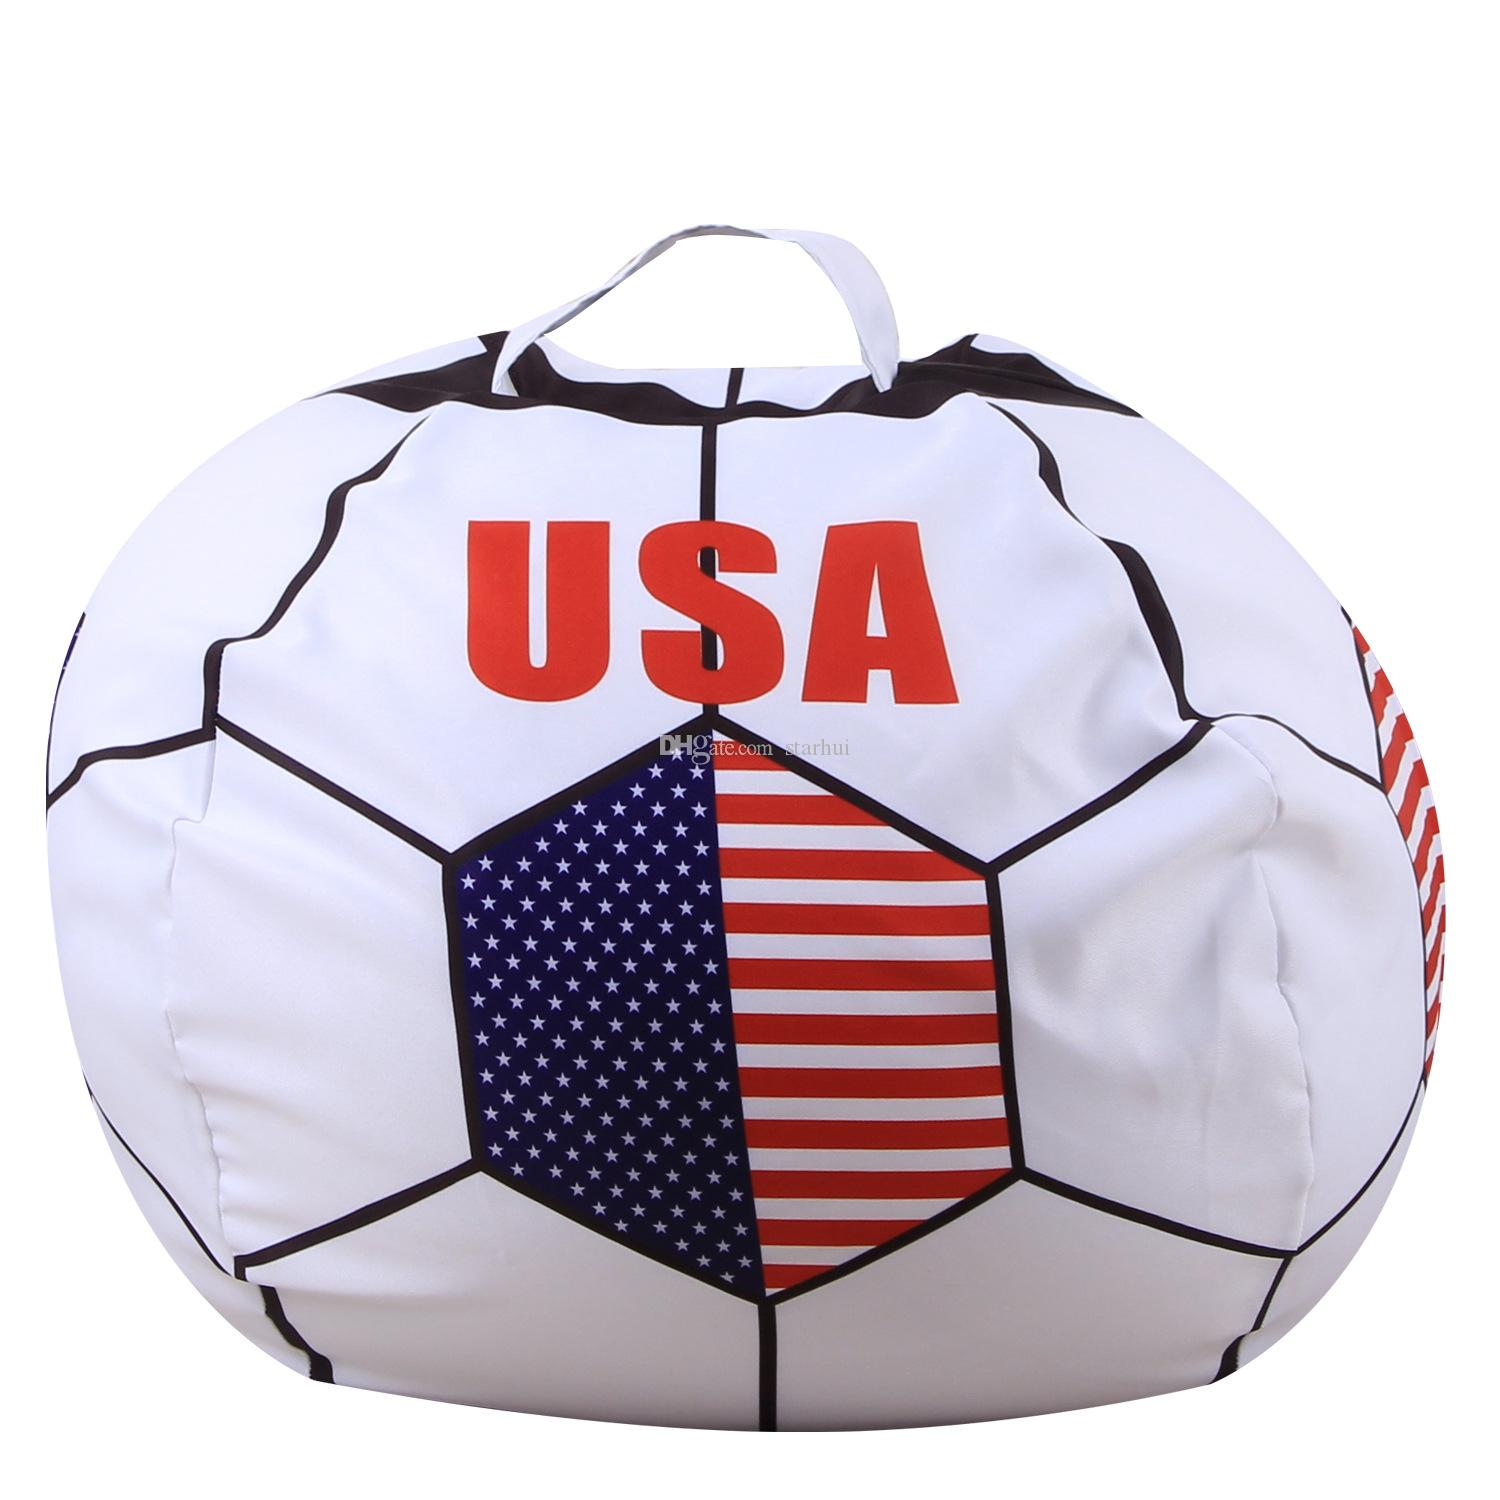 Country Flag Storage Bag Children's Toys Animal Football Fan Stool Blanket Clothing Organization Bags 26 inch 34 Styles WX9-548